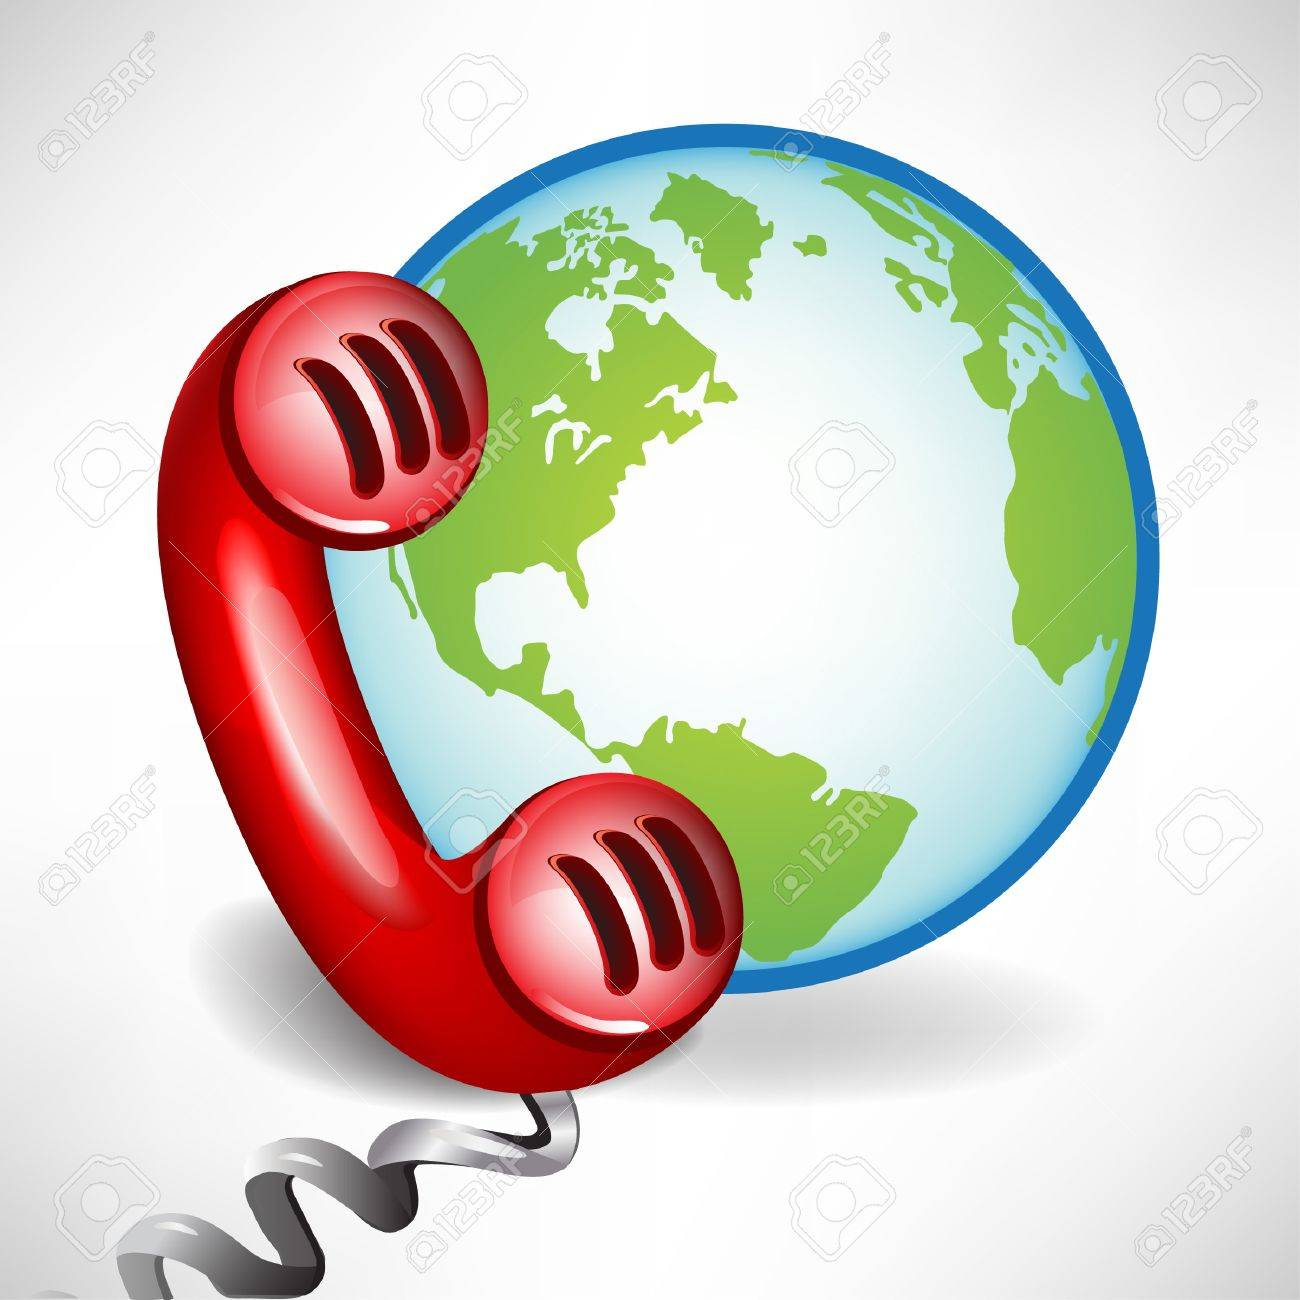 international customer support call center icon isolated on white Stock Vector - 10888195